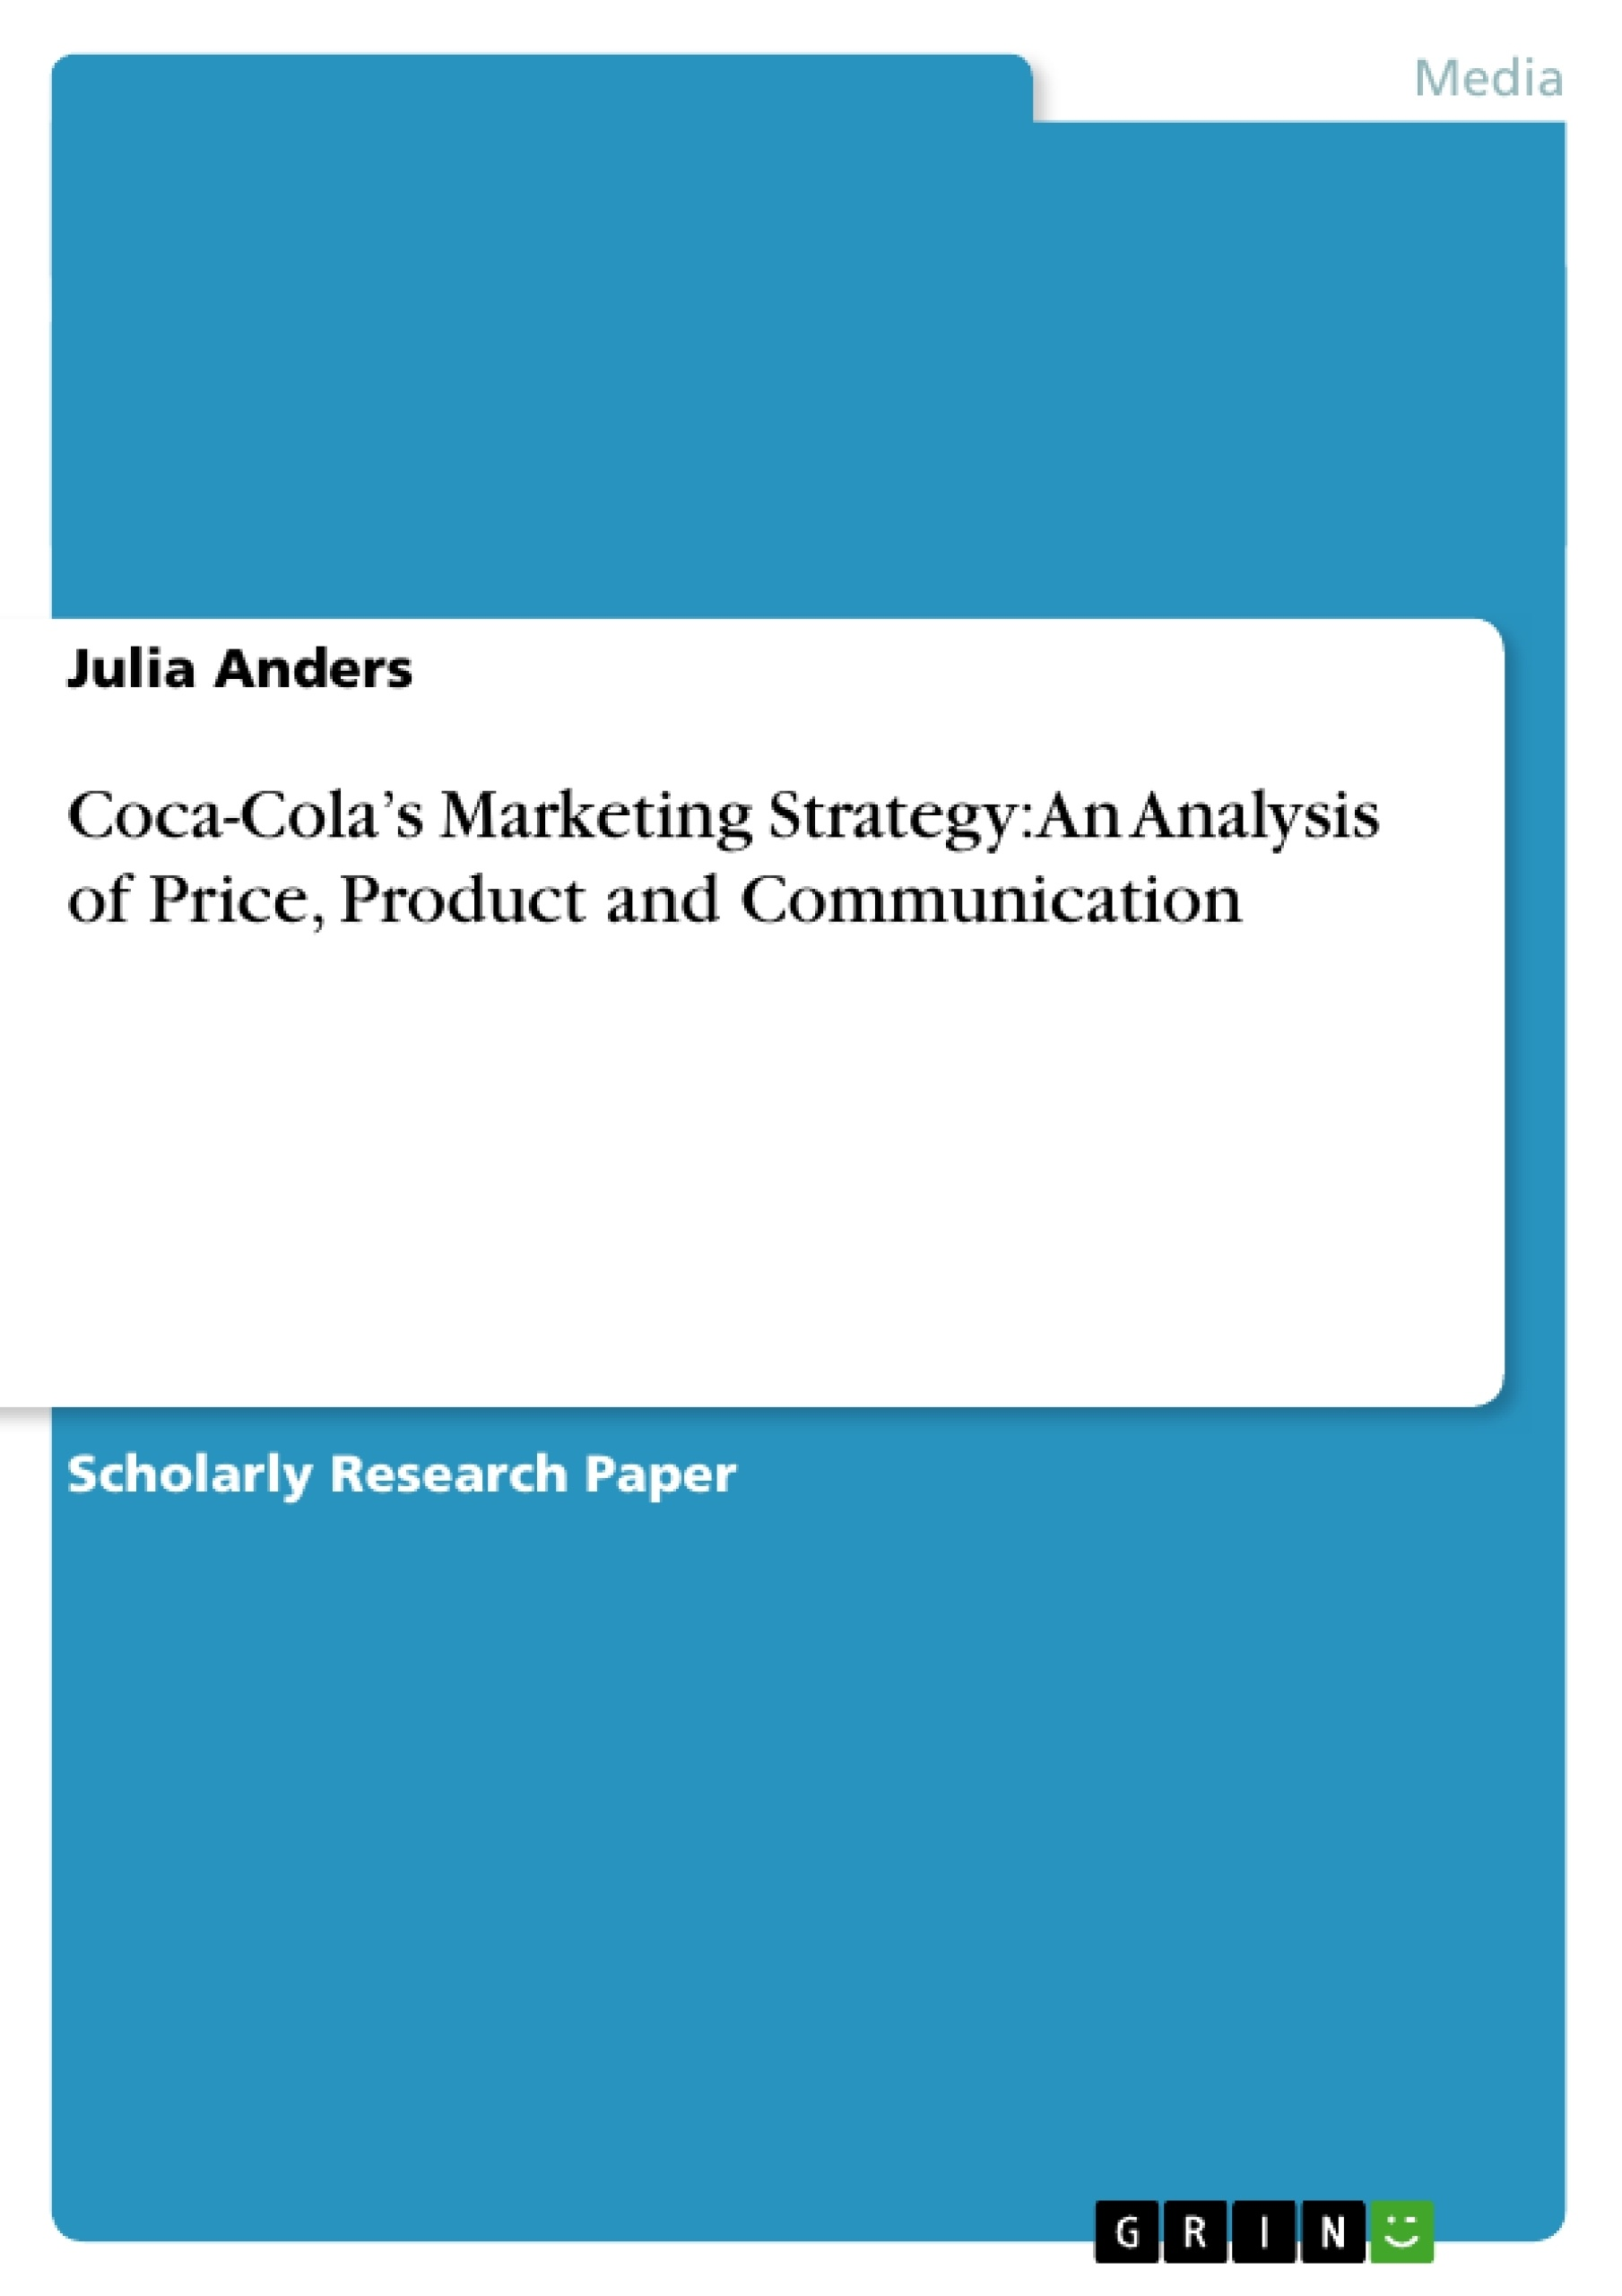 Title: Coca-Cola's Marketing Strategy: An Analysis of Price, Product and Communication